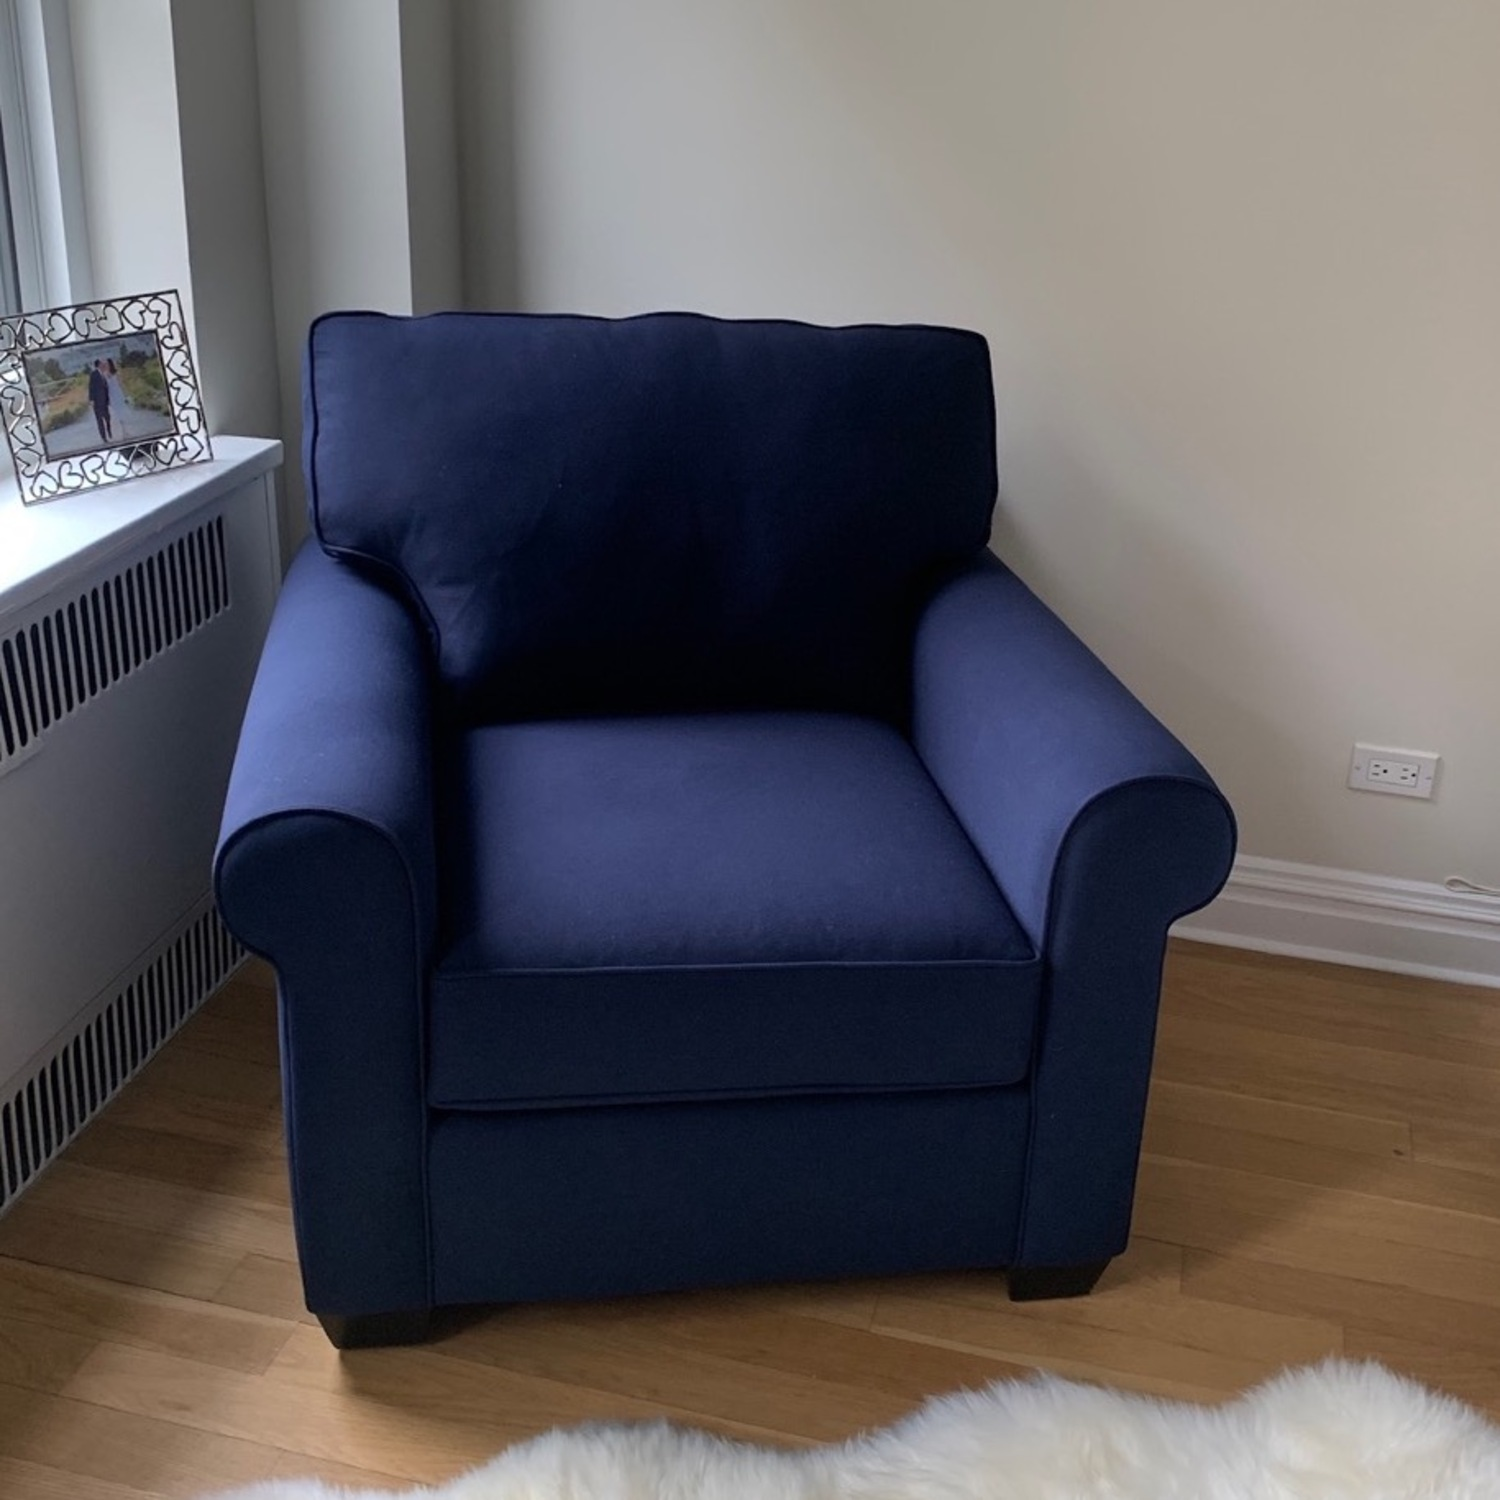 Pottery Barn Buchanan Arm Chair Navy Blue Twill - image-1